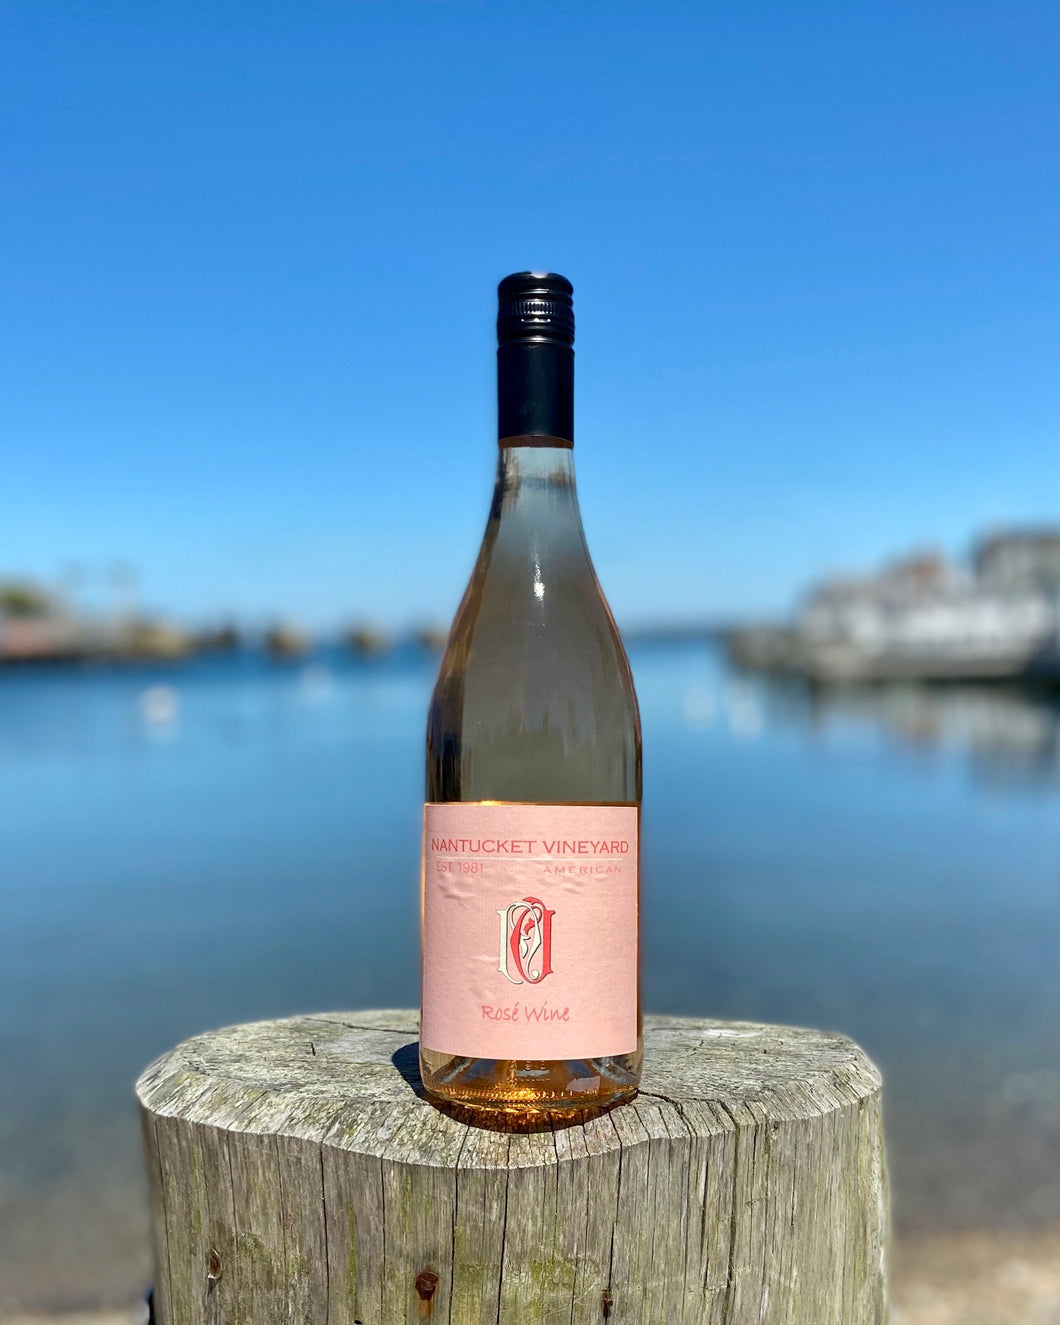 Nantucket Vineyard Rose